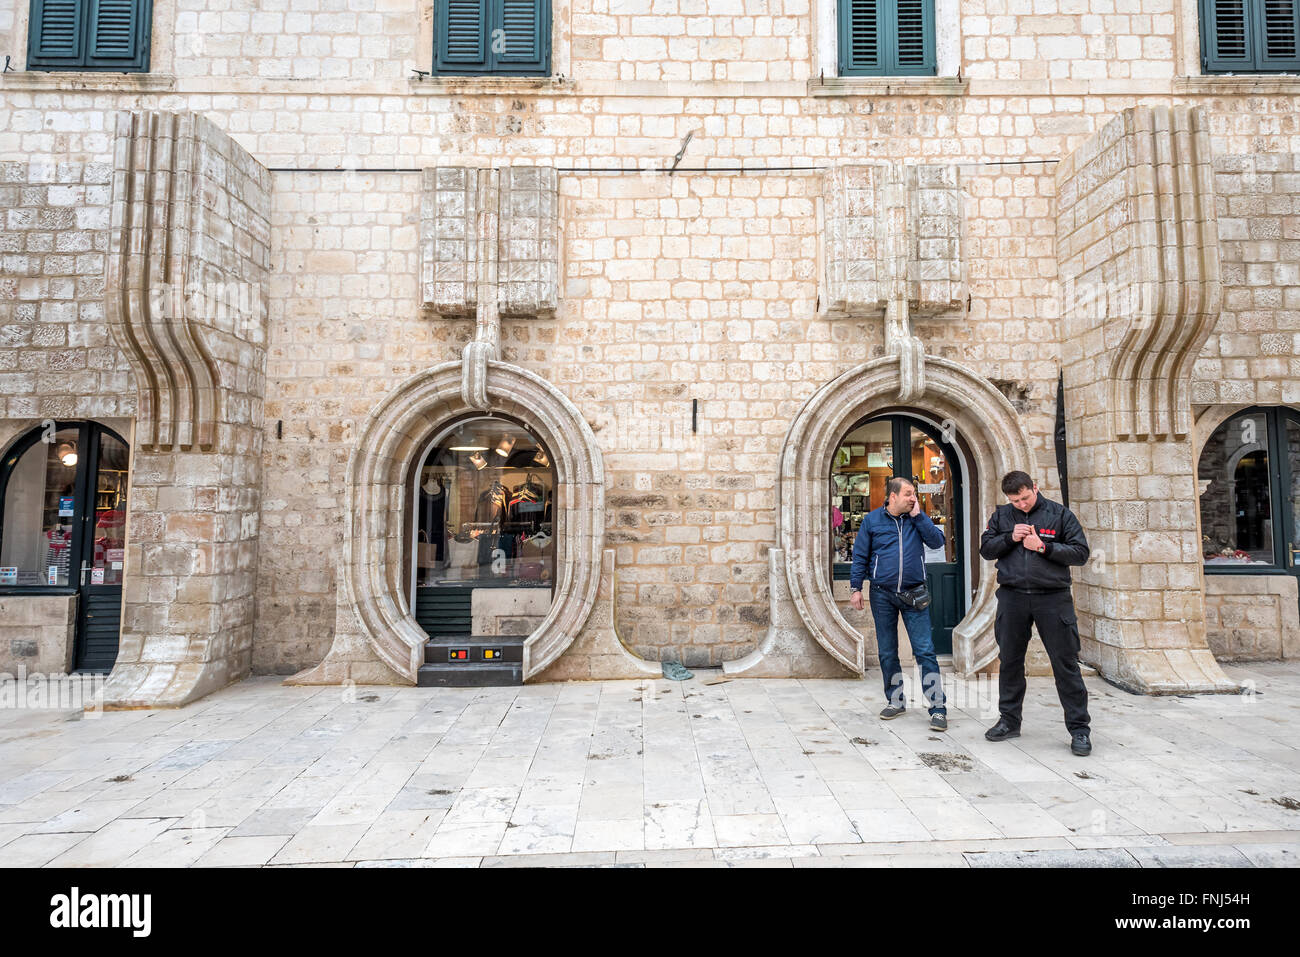 Star Wars adaptation of shopfronts in the old city of Dubrovnik, Croatia. - Stock Image